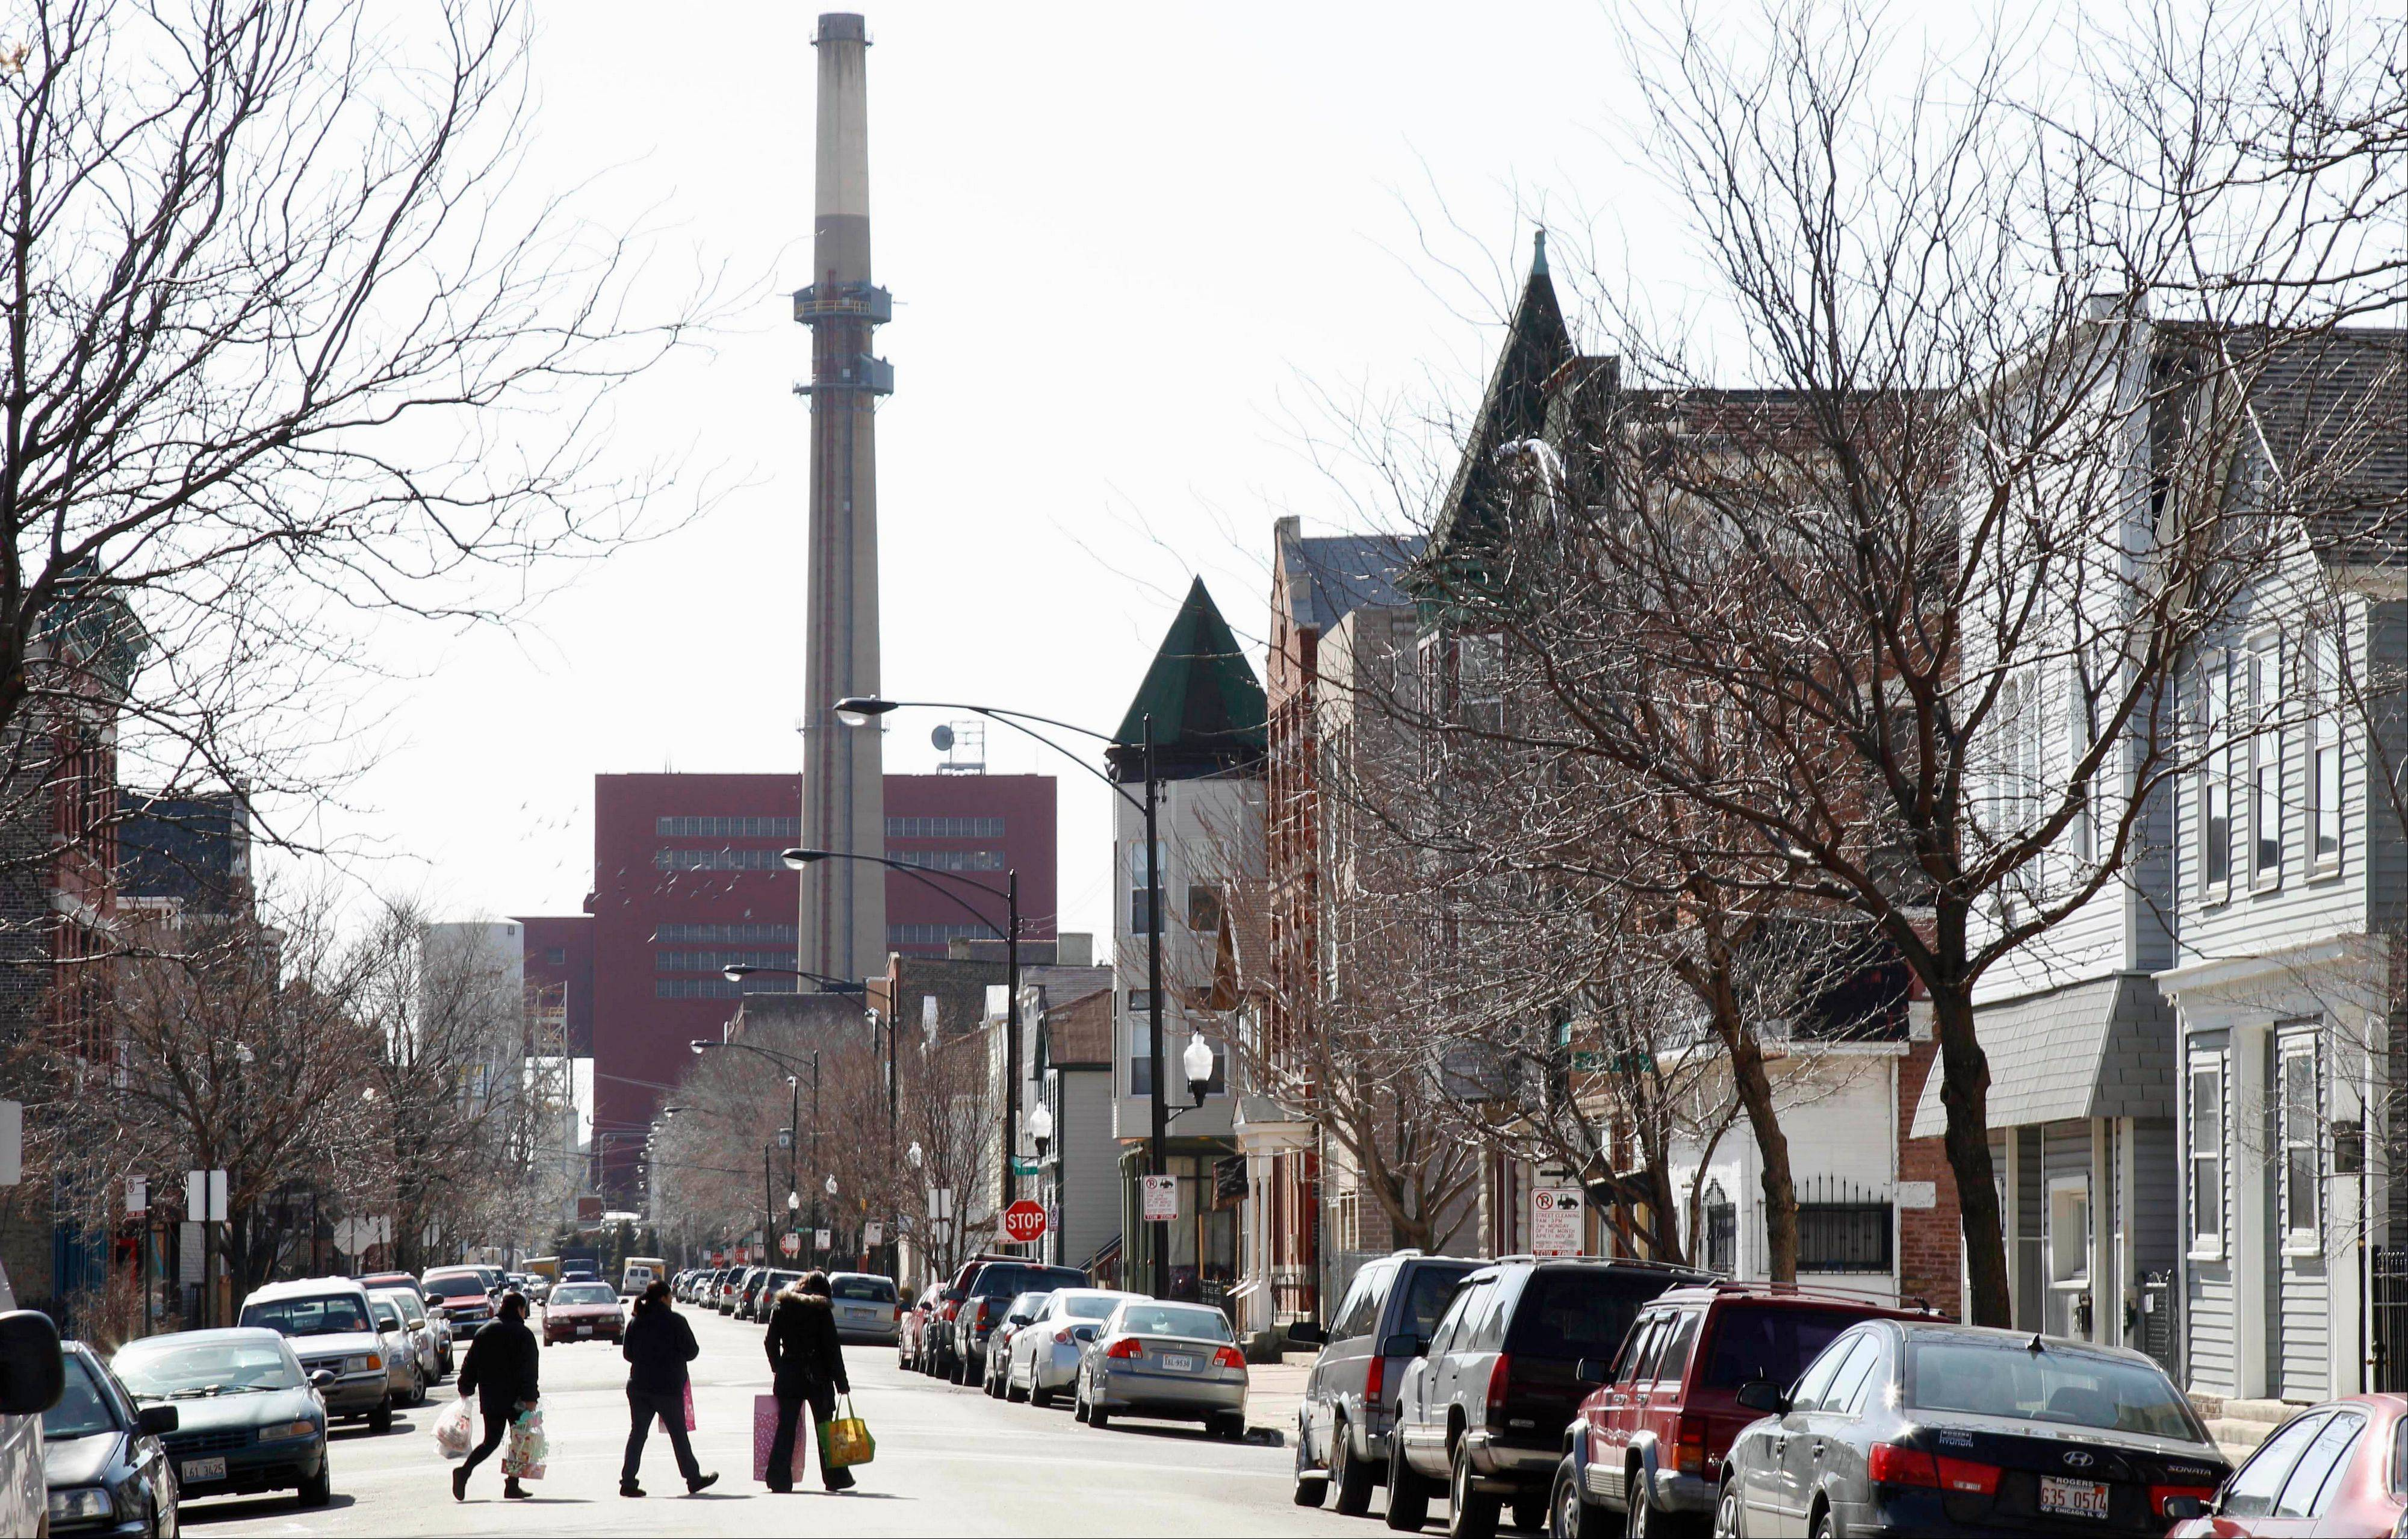 Midwest Generation's Fisk Generating Station, a coal-fired power plant, is seen in the background in Chicago's Pilsen neighborhood.  Associated Press